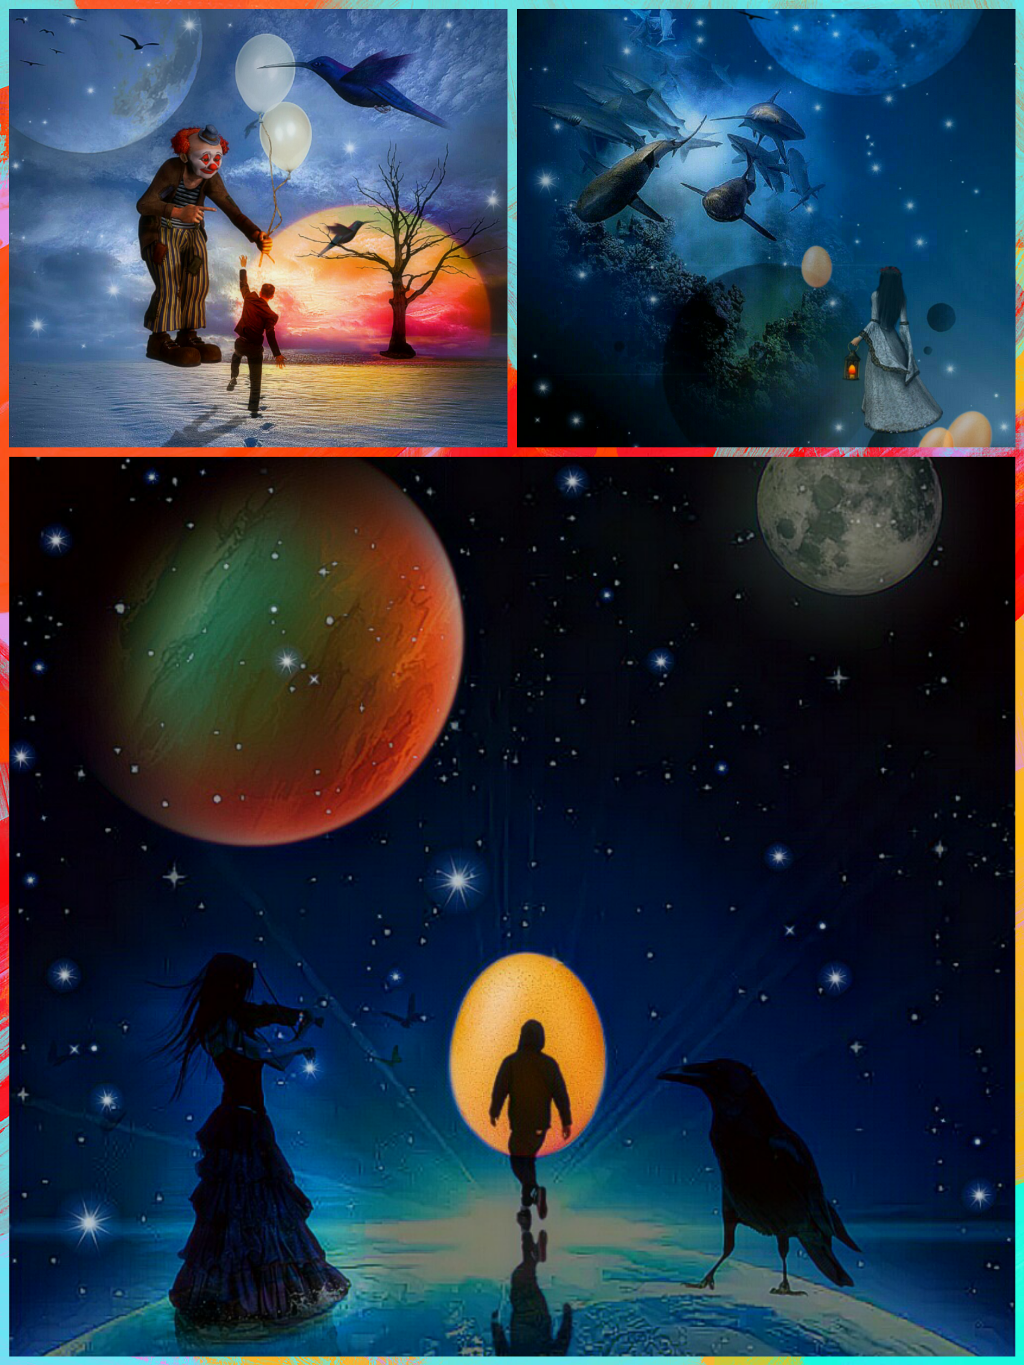 Planeten clipart collage. Freetoedit artcollage surreal fantasy